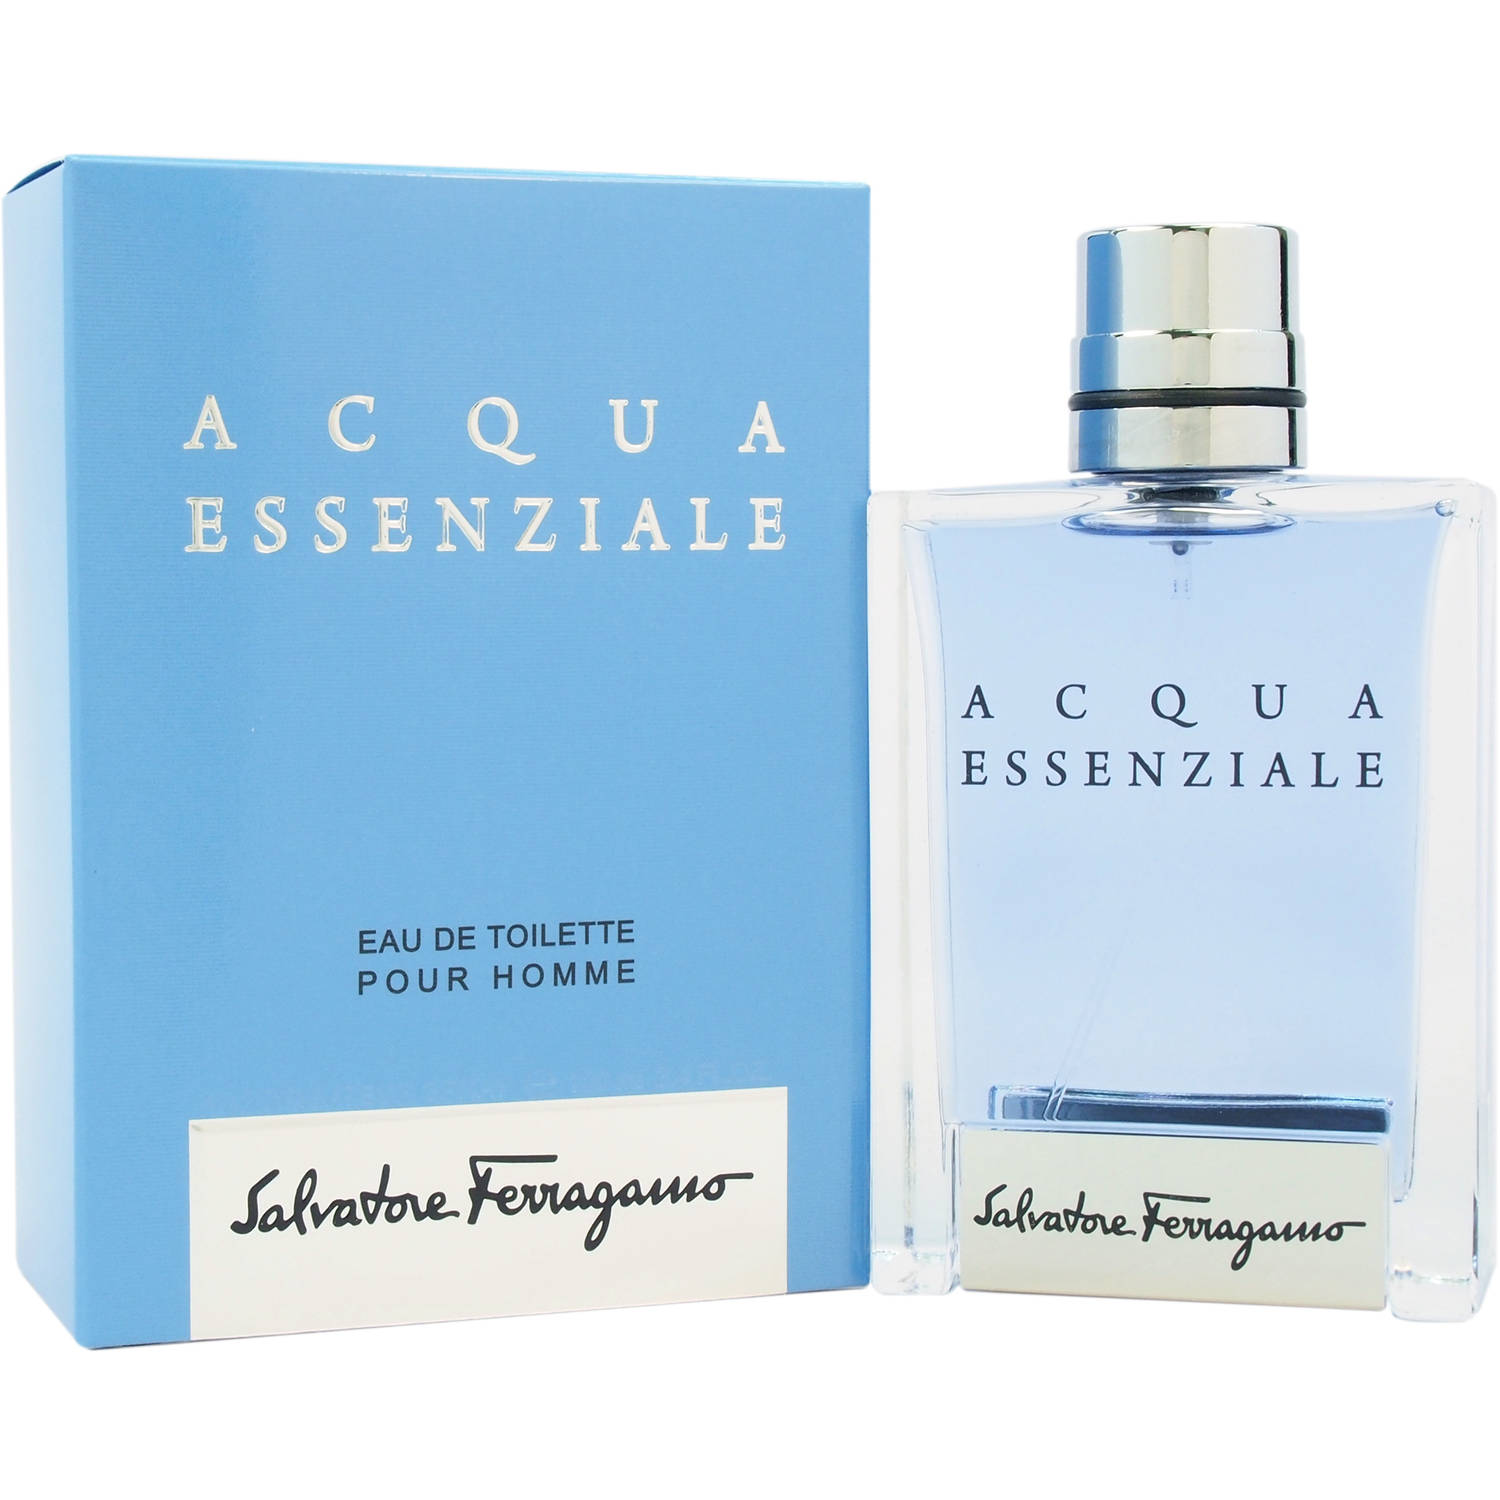 Salvatore Ferragamo Acqua Essenziale for Men Eau de Toilette Spray, 3.4 fl oz